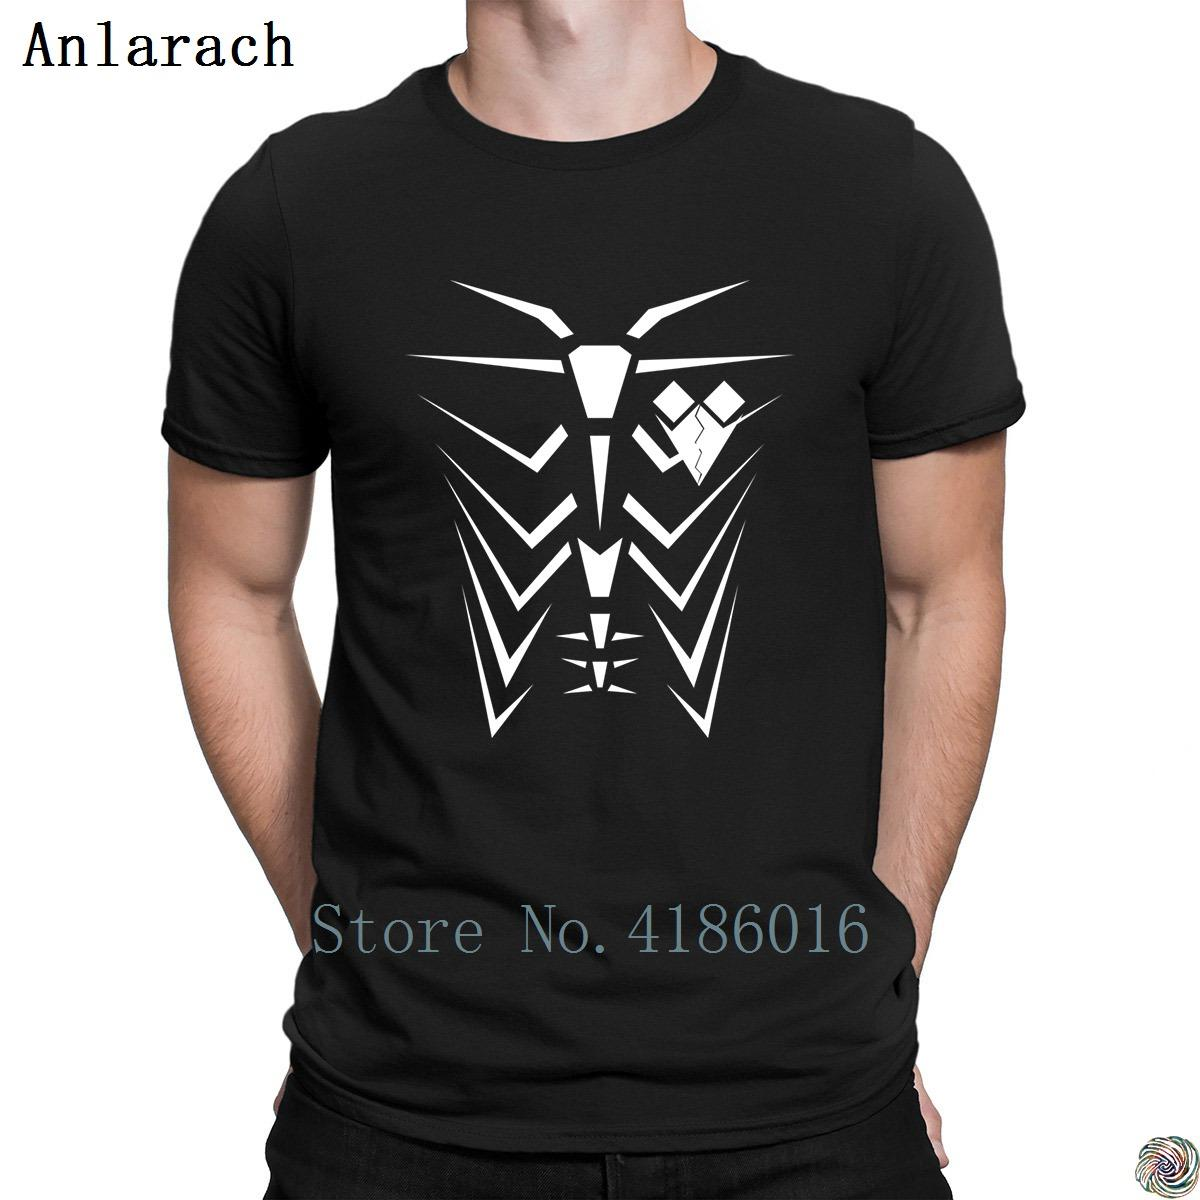 2263d98a Abstract Skeleton T Shirt 100% Cotton Original Create Top Tee T Shirt For  Men Fun Sunlight Gents Anlarach Building Awesome Tee Shirt Designs T Shirts  ...